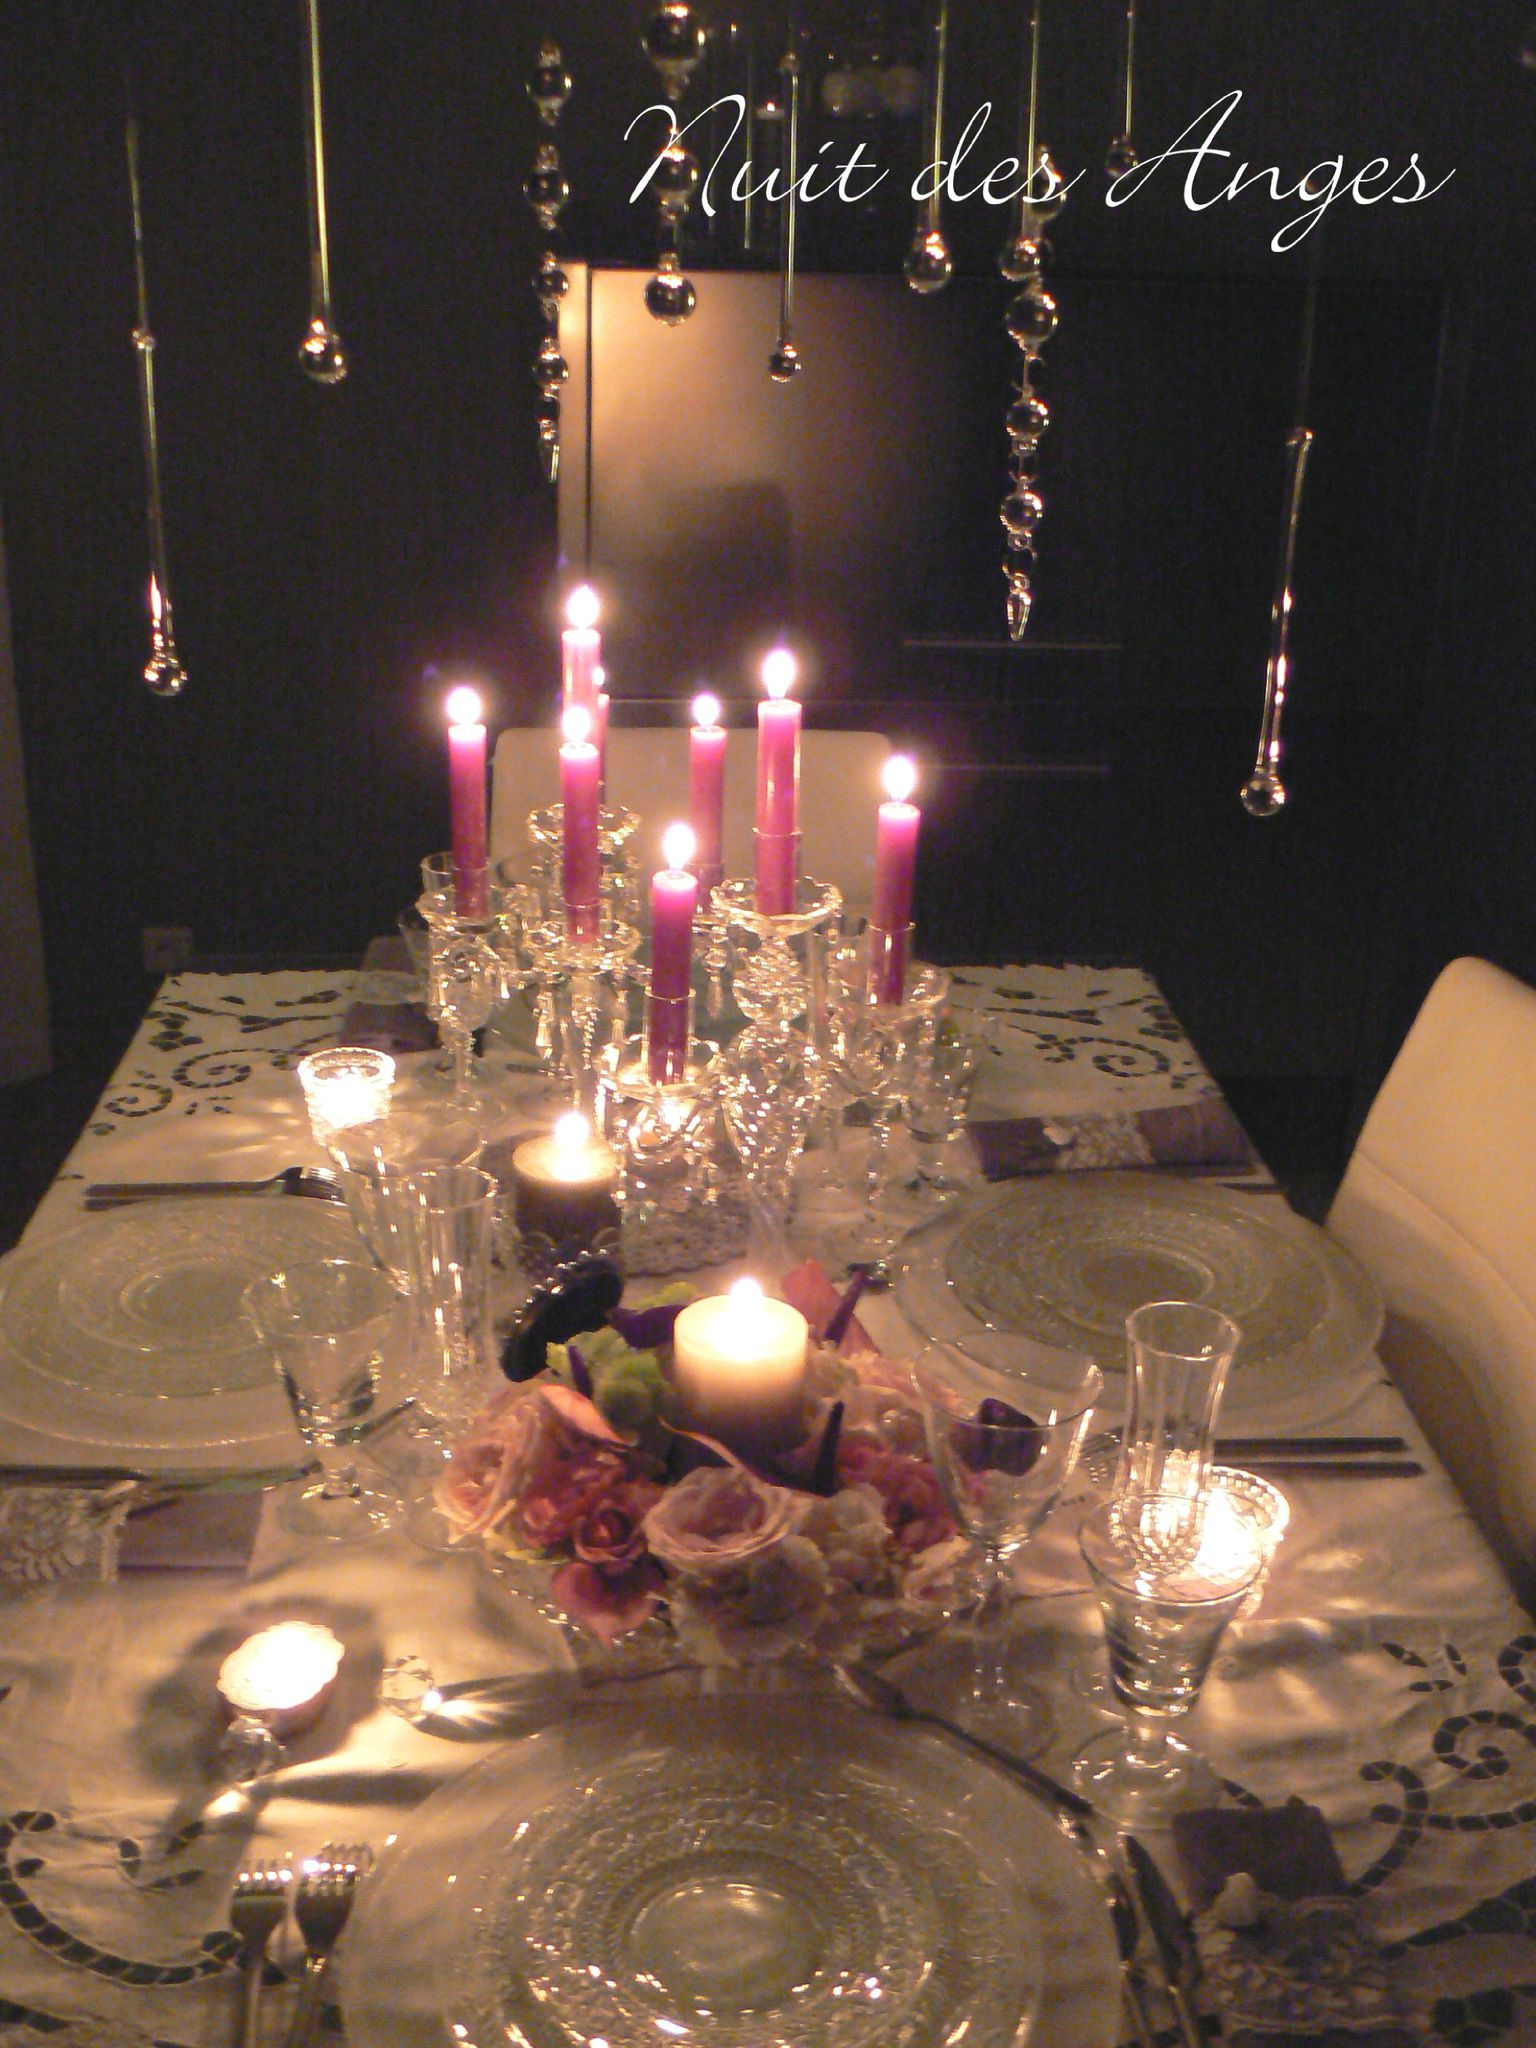 deco romantique table. Black Bedroom Furniture Sets. Home Design Ideas